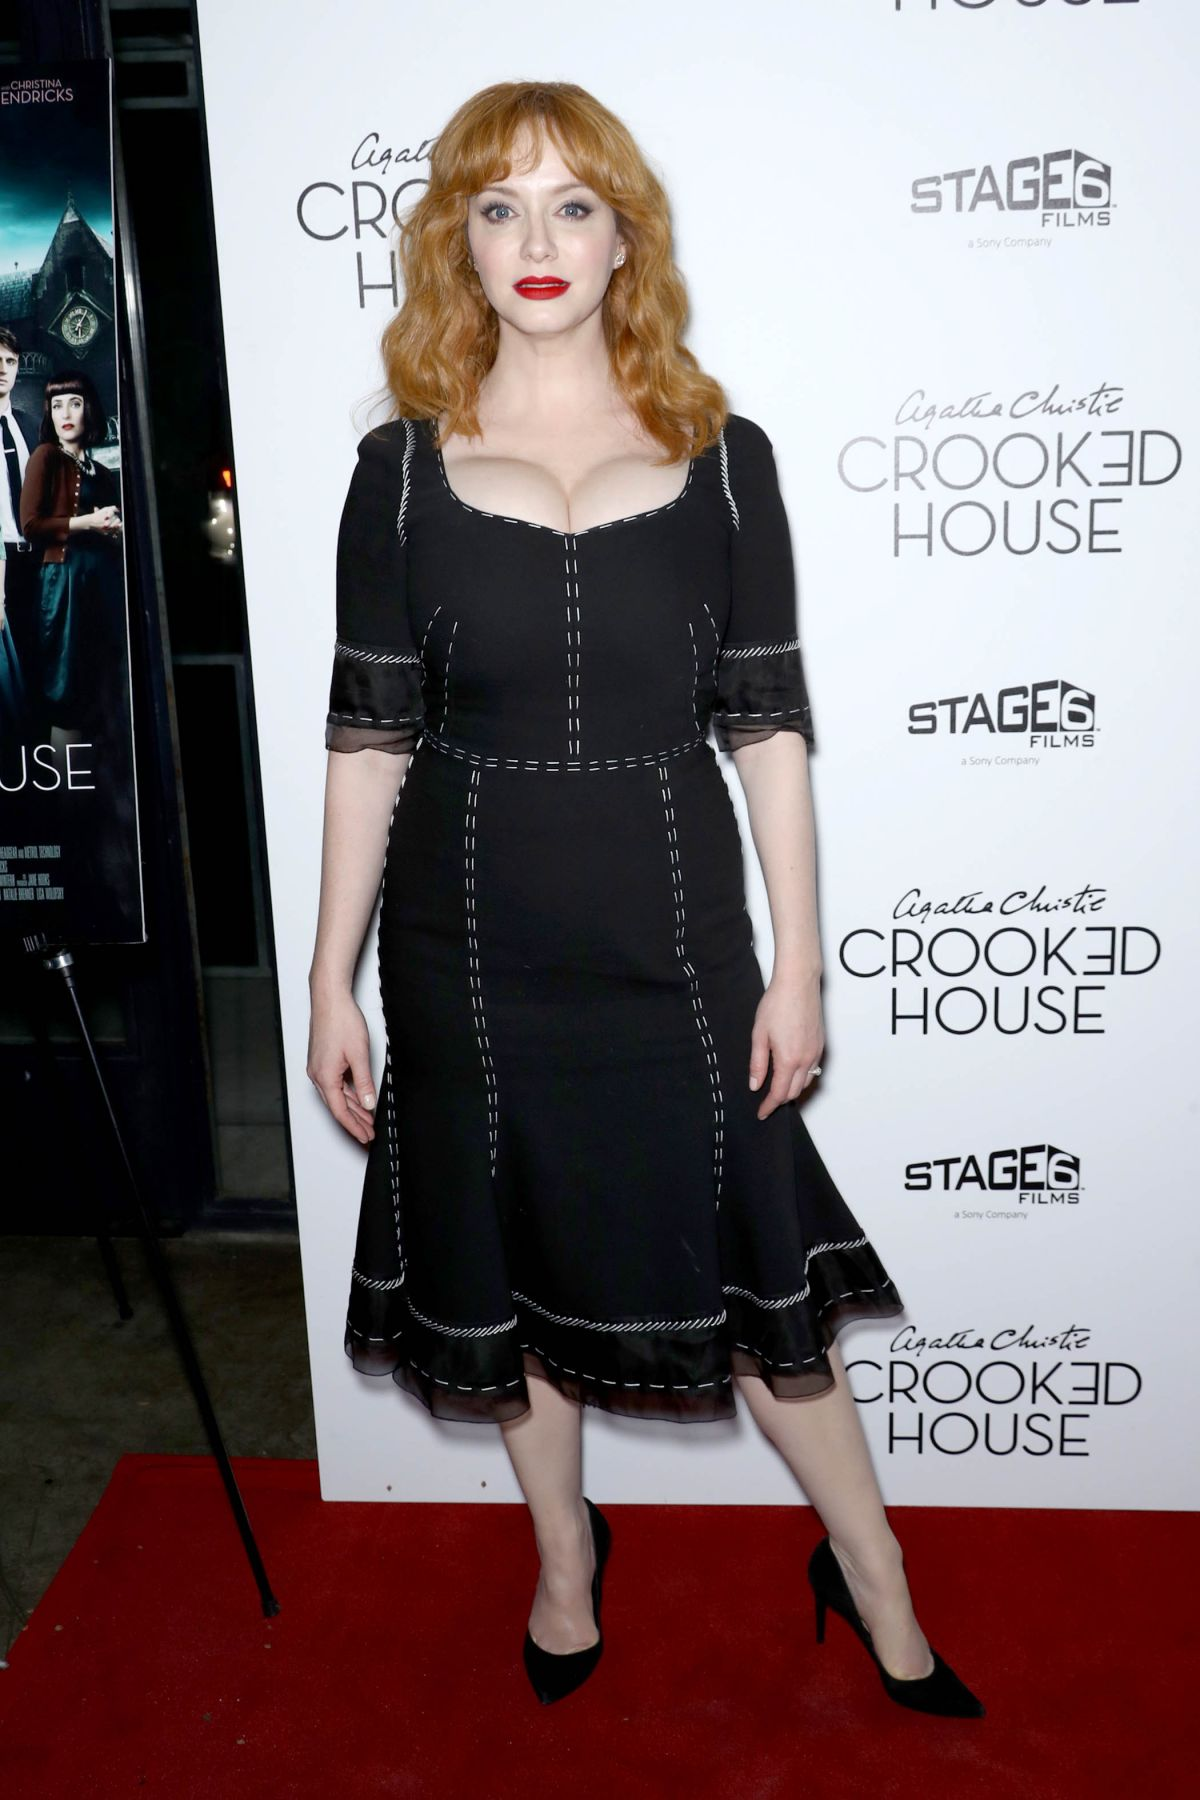 Christina Hendricks At Crooked House Premiere In New York